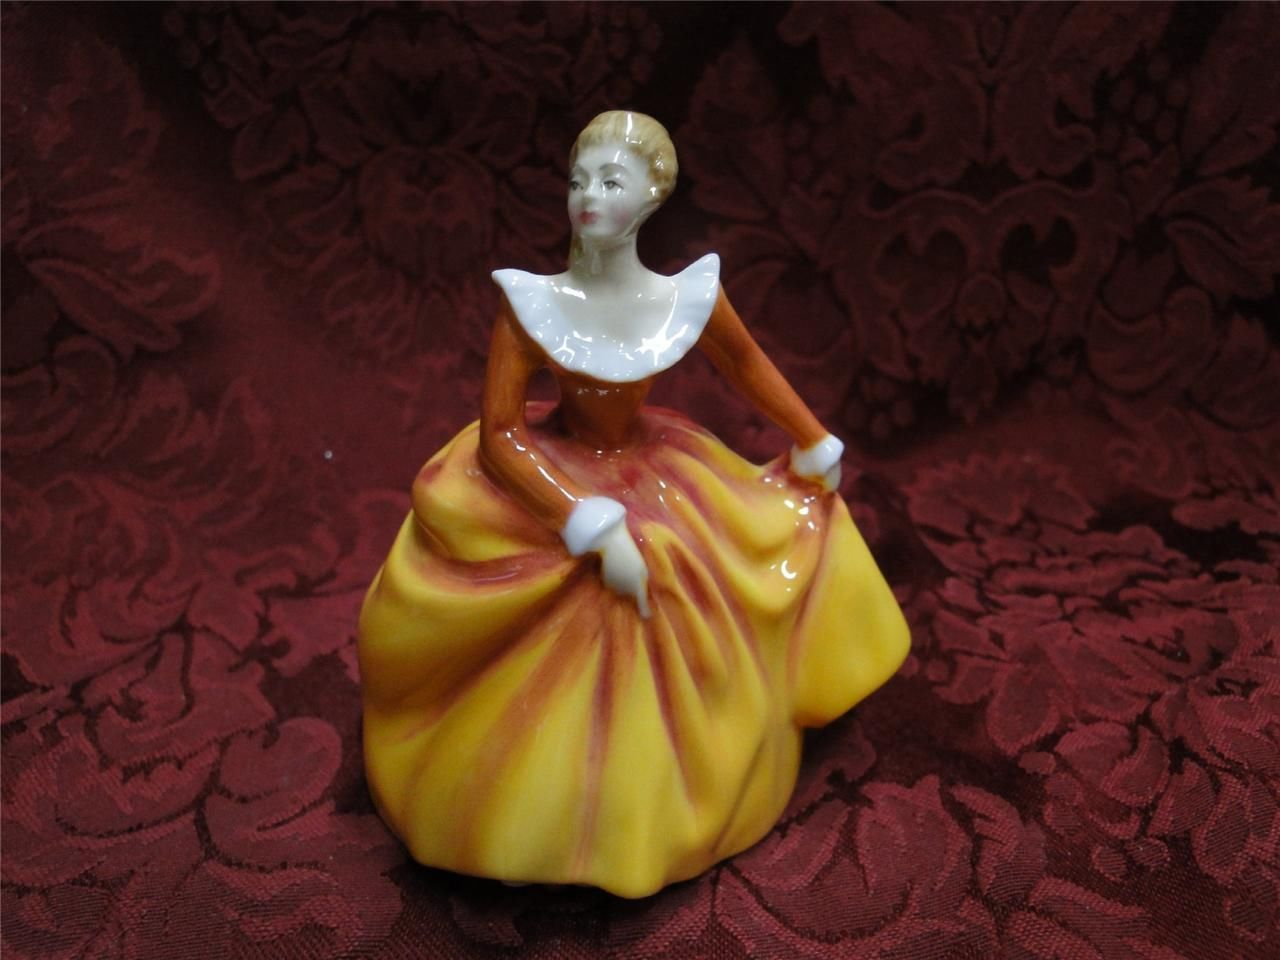 Royal Doulton Figurine, Great Gift, Miniature,